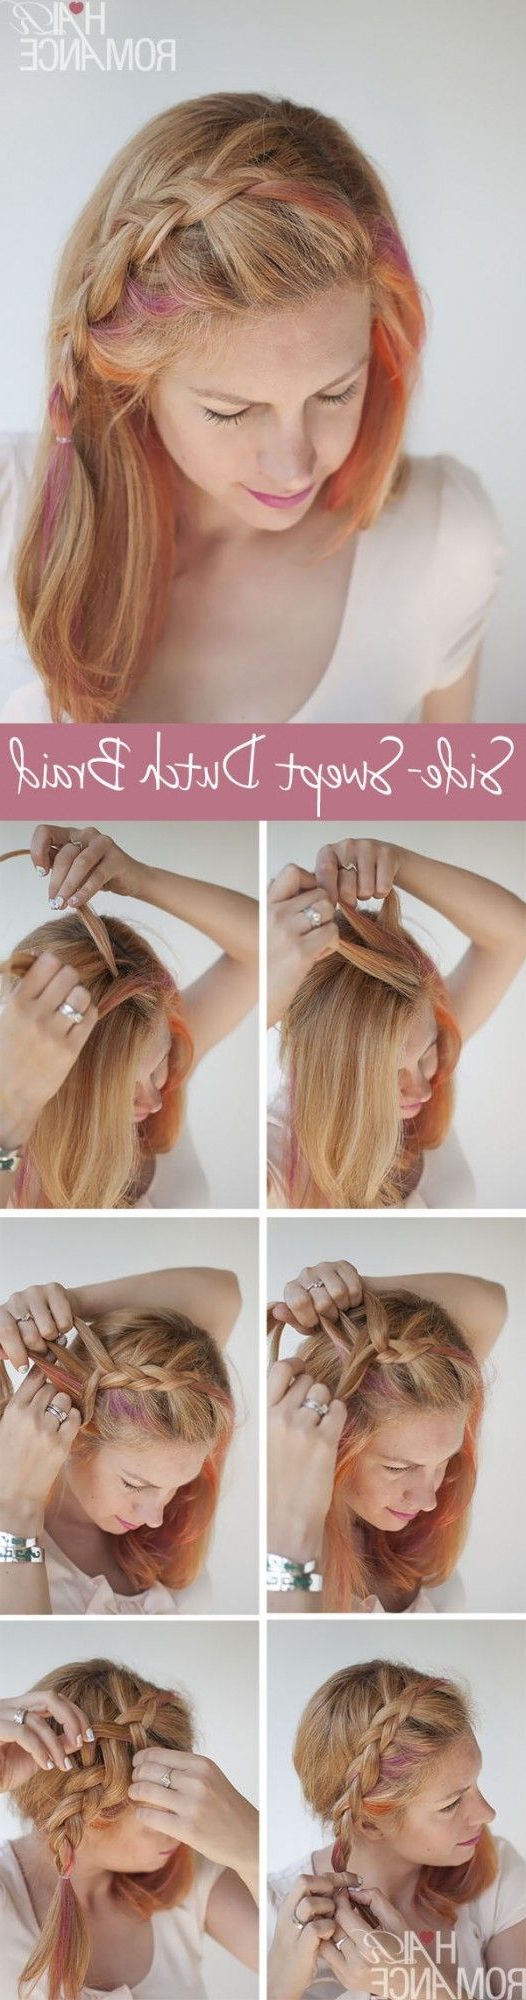 Latest Side Swept Braid Hairstyles Inside Side Swept Braid Hair You Won't Miss: Hair Tutorials (View 11 of 20)